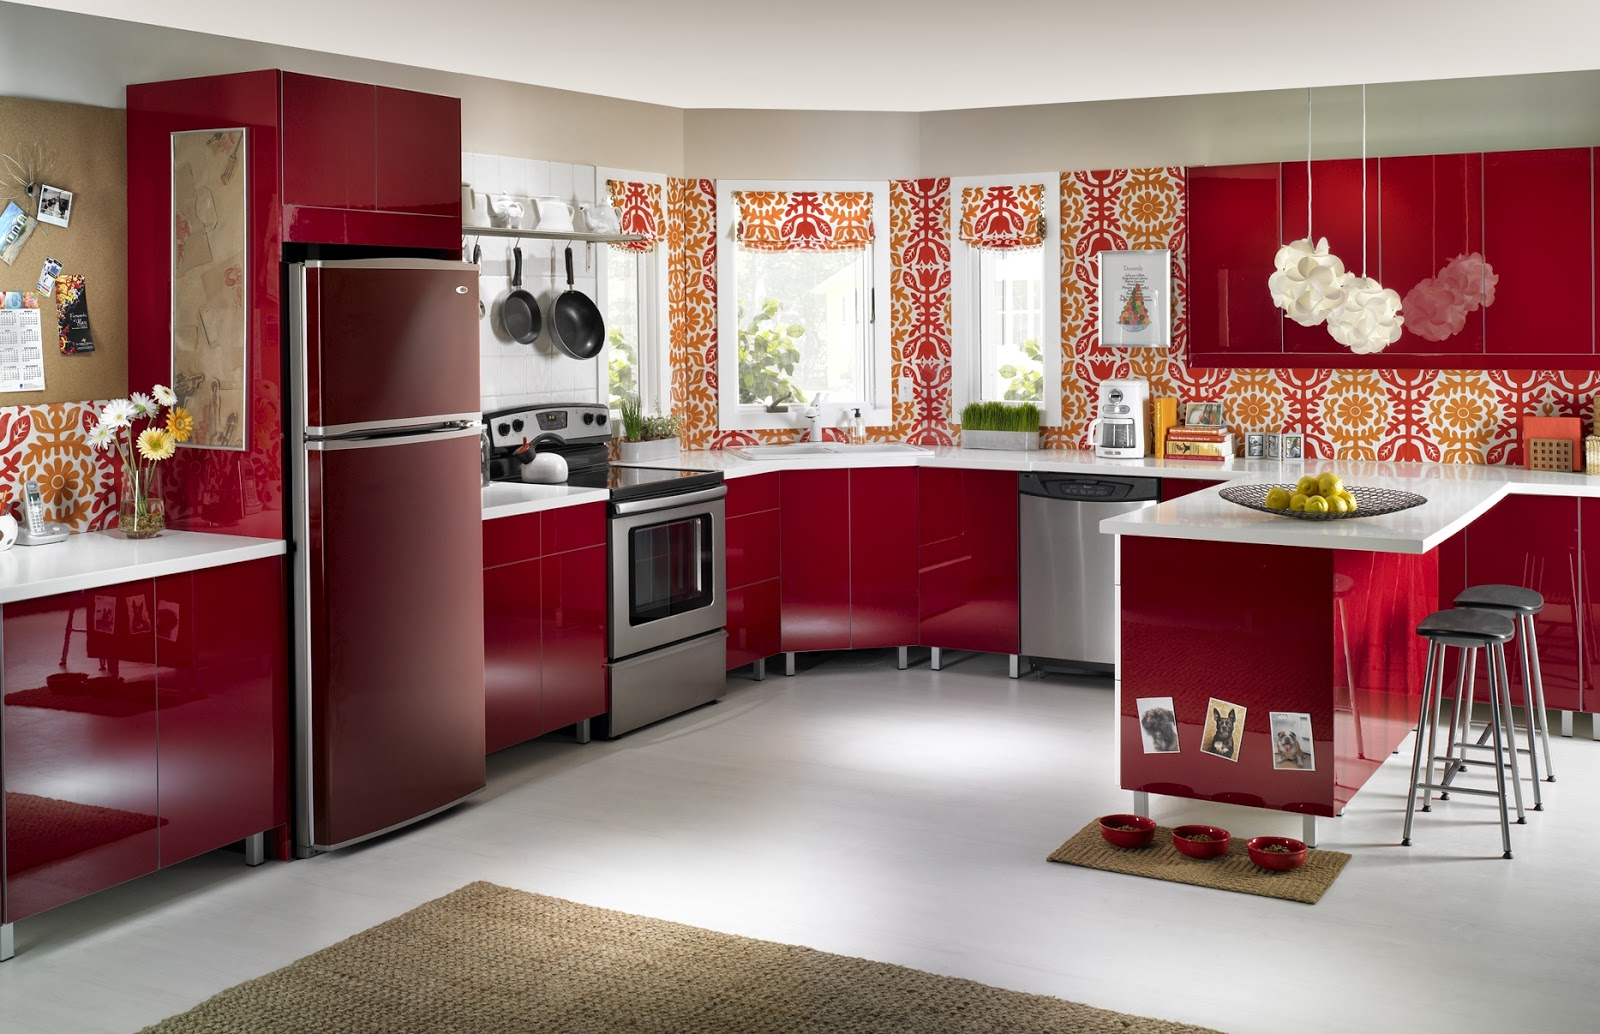 Can You Mix Kitchen Appliance Colors - 5 smart ways to buy affordable overstock appliances for your kitchen